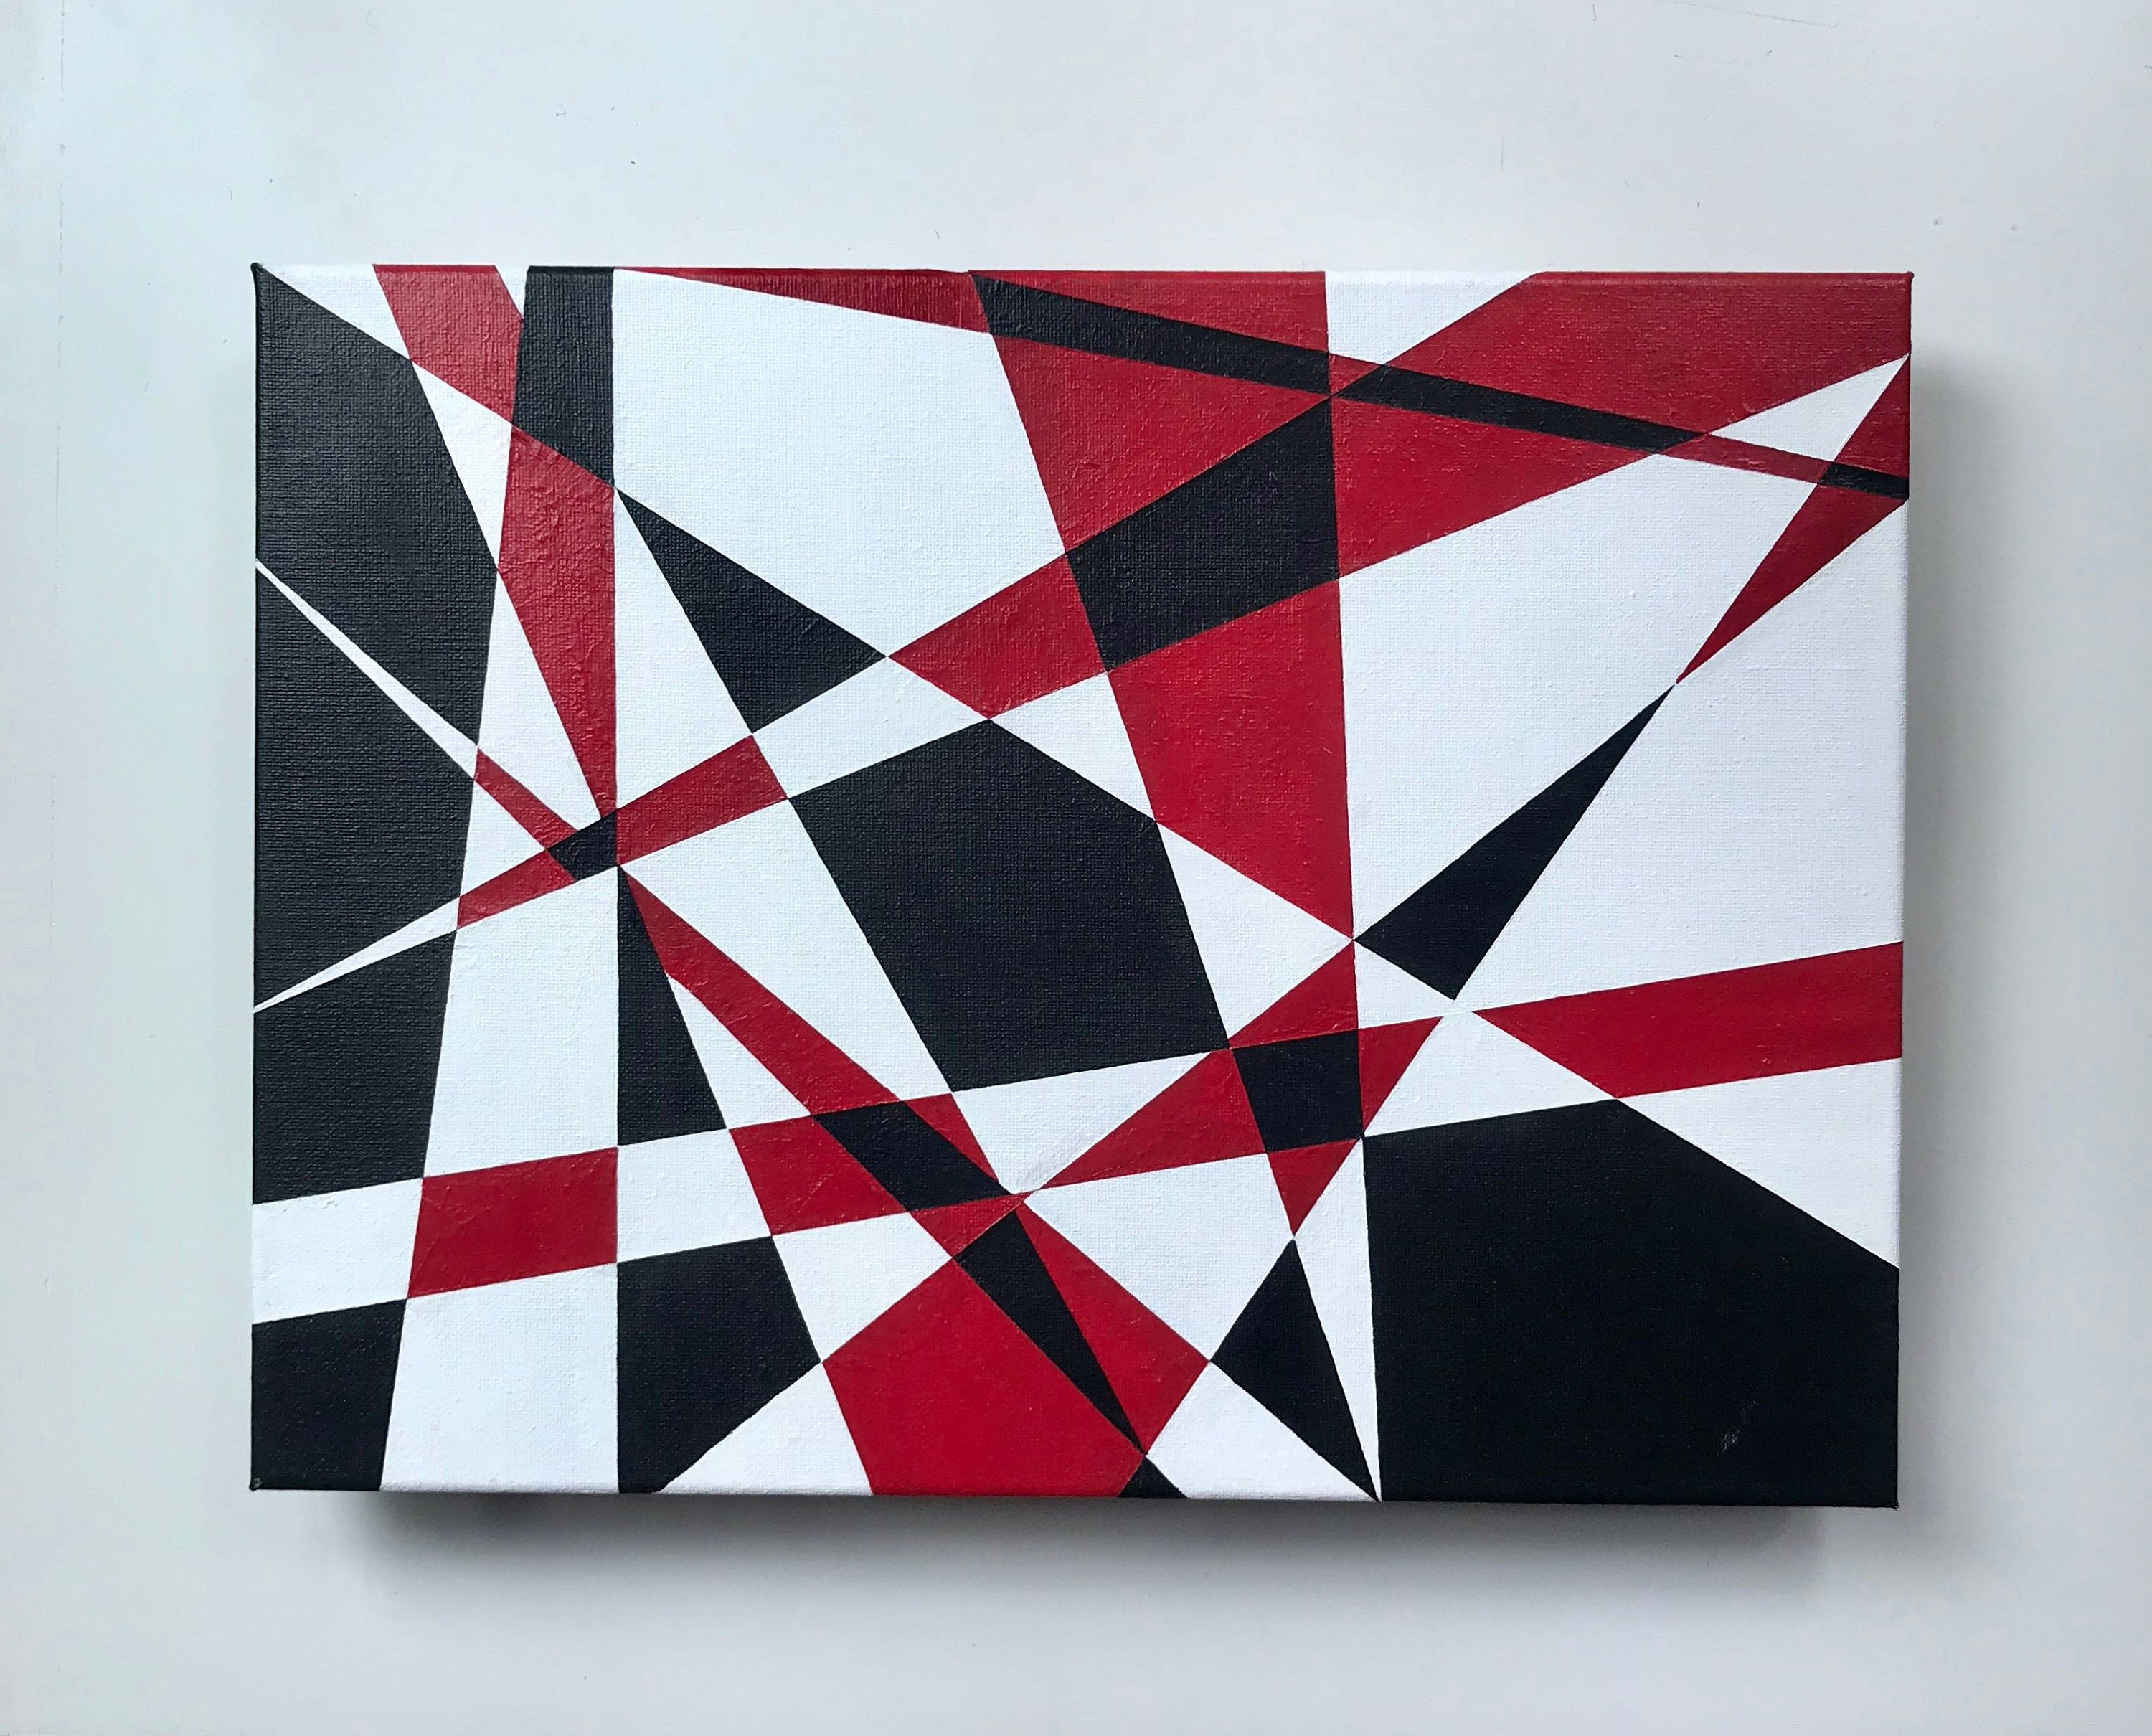 12x16 Red Black And White Geometric Abstract Modern Art Etsy Modern Art Paintings Abstract Modern Art Abstract Etsy Painting